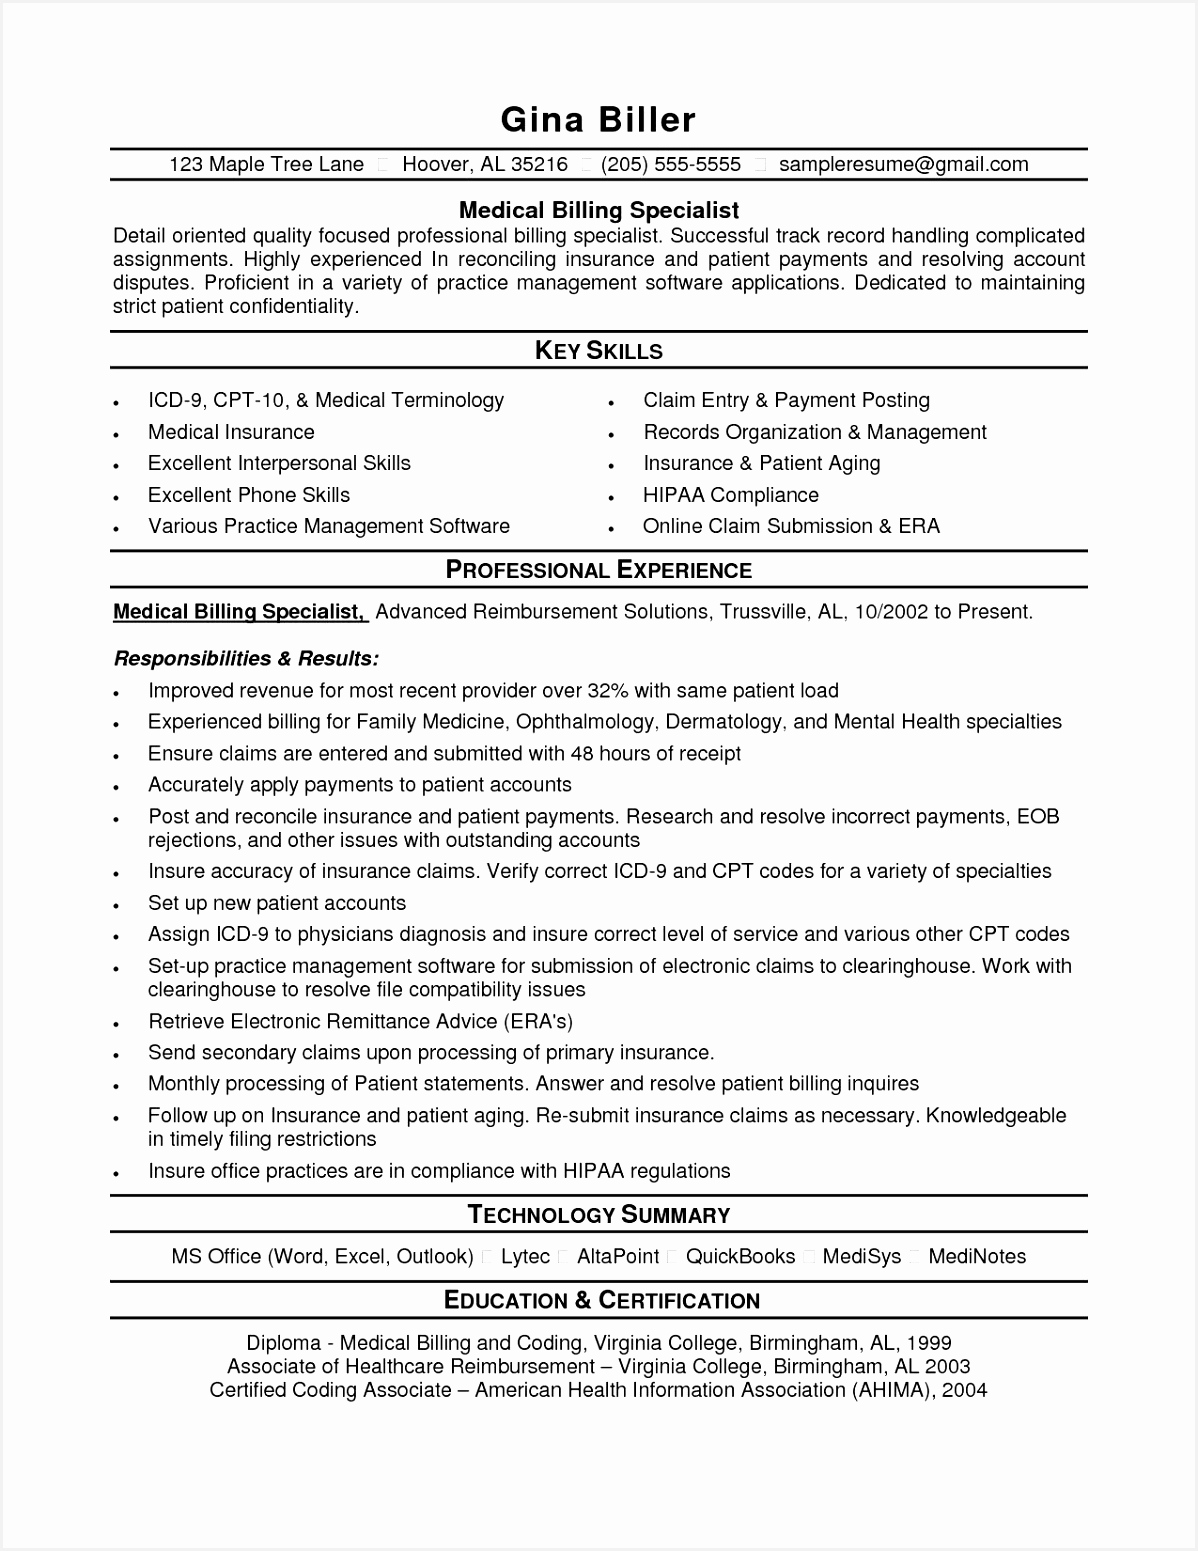 sample medical billing resume templates best of 28 new medical coding resume samples resume templates resume 15511198dkdue